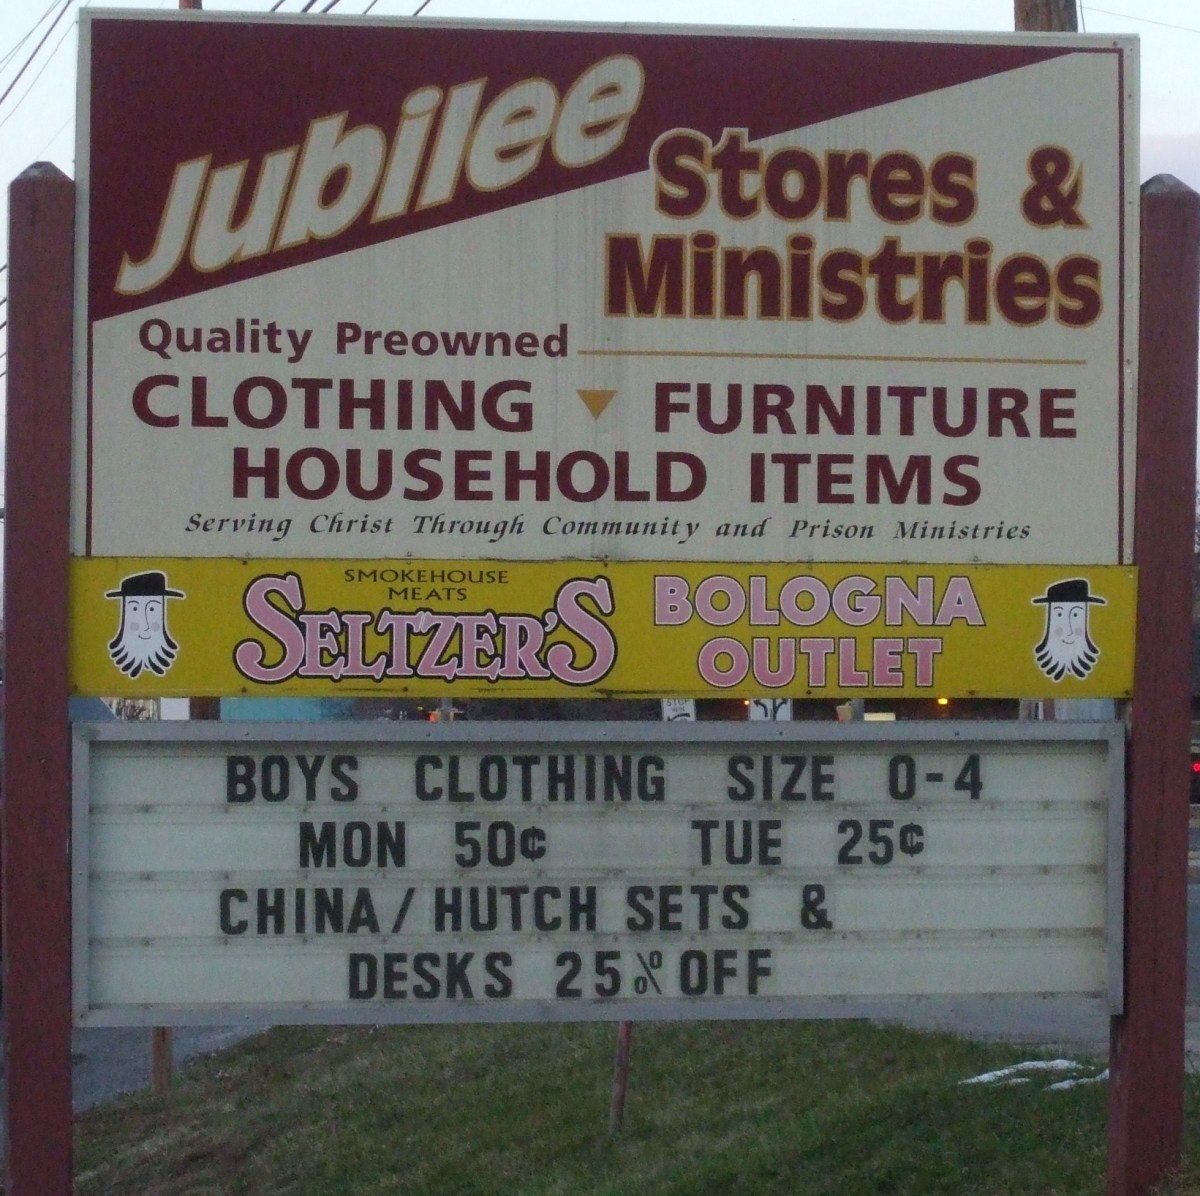 The sign outside the main Jubilee thrift store in Lebanon city.